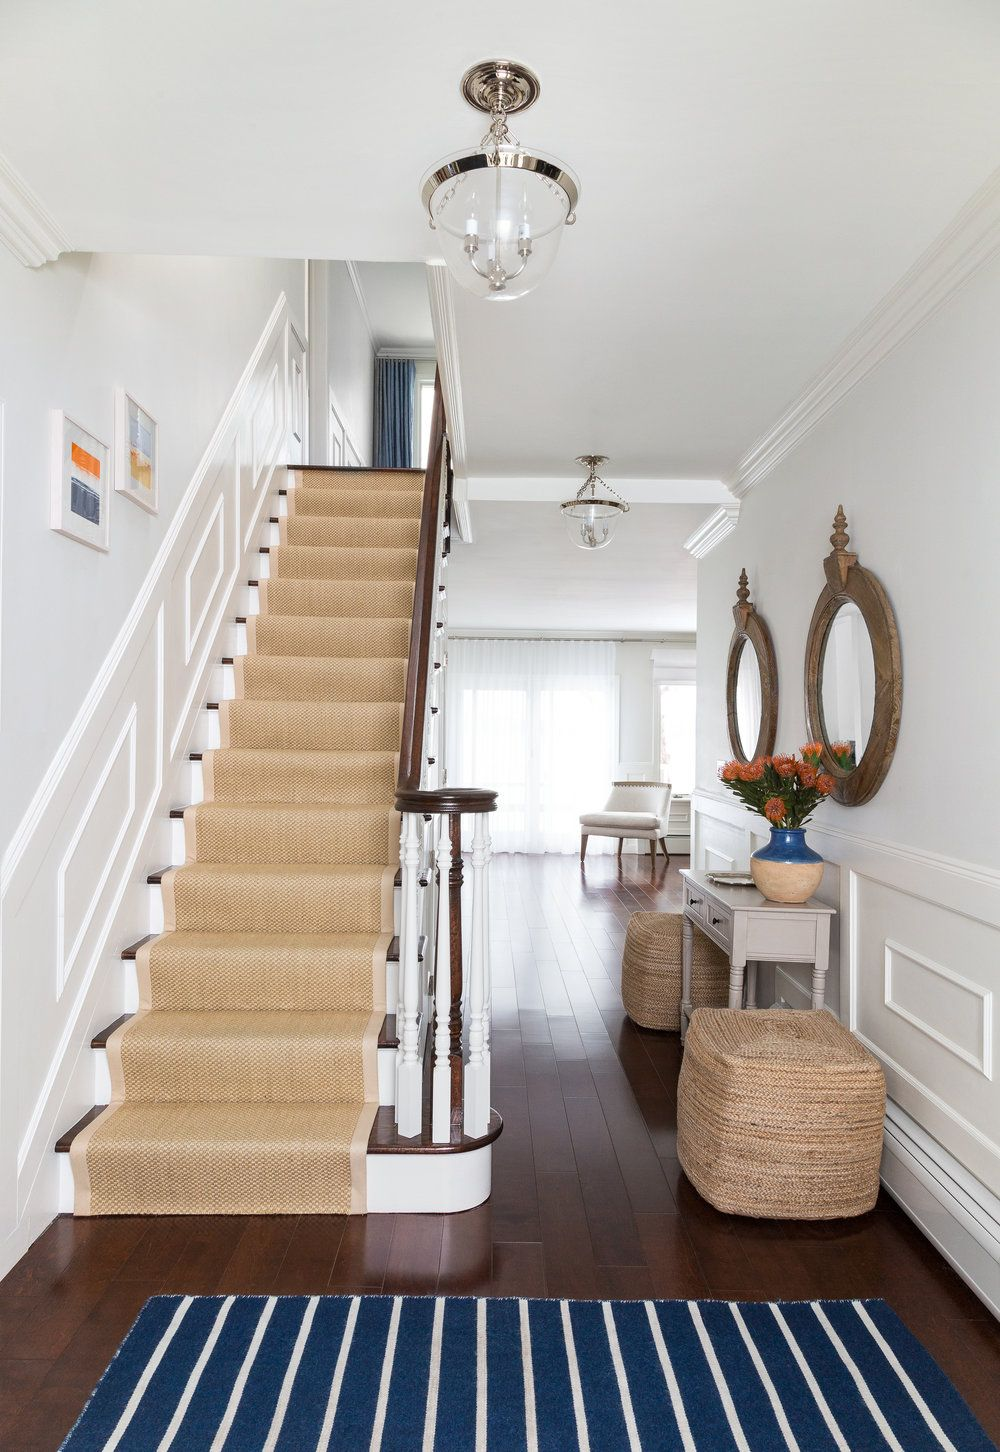 Pin by Anthony De Maio on Stair step ideas | Pinterest | Colonial ...